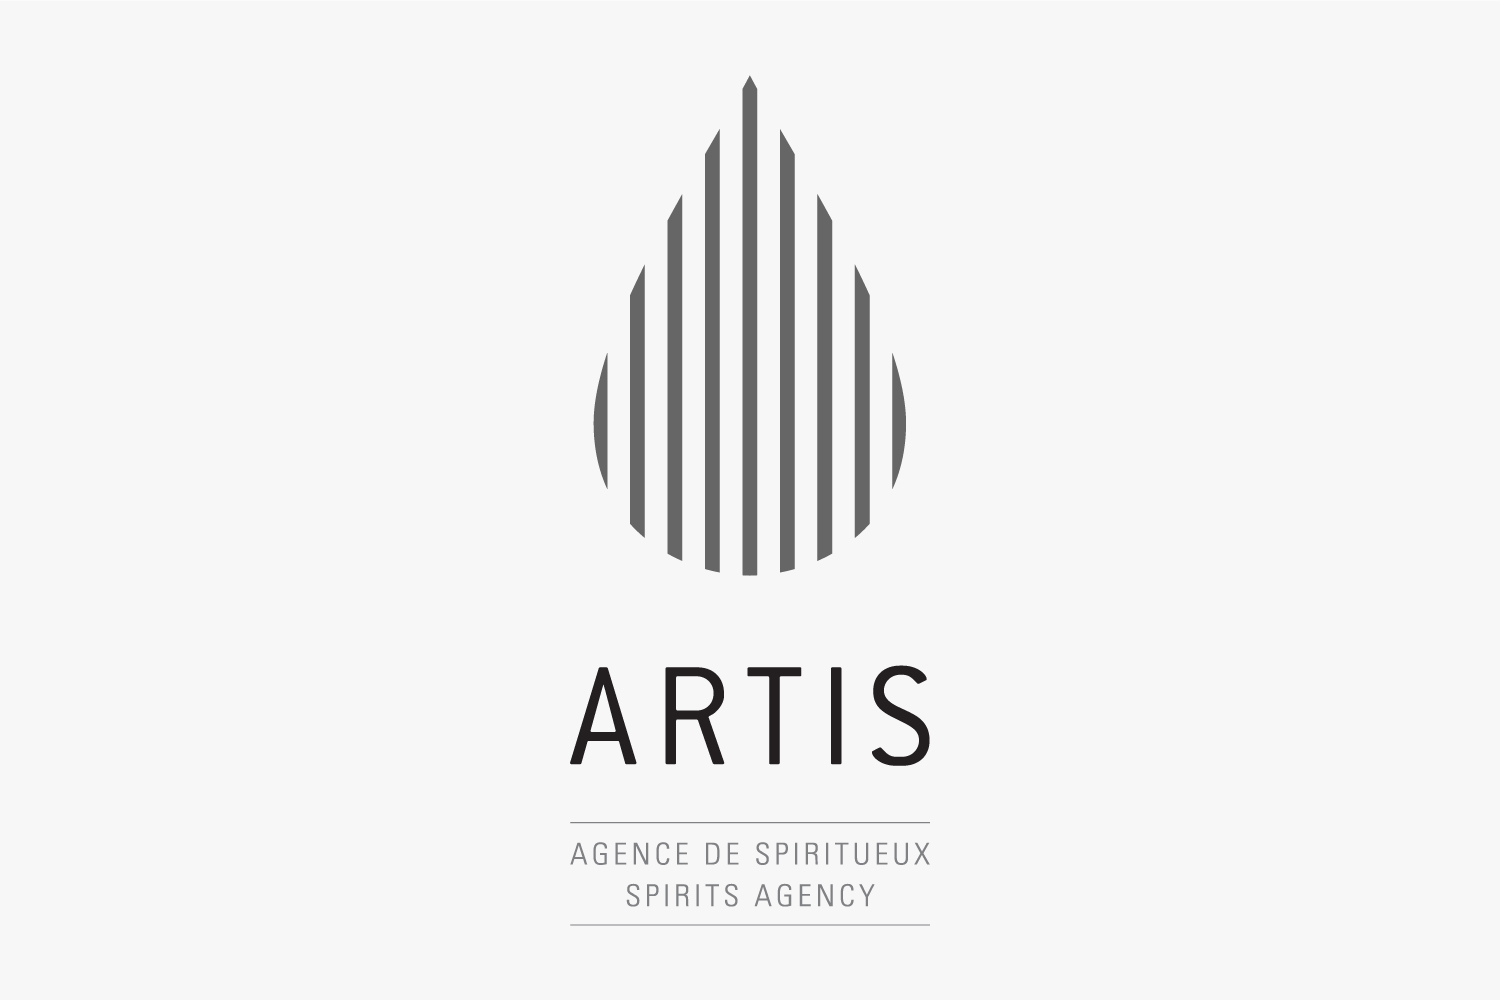 ARTIS – Spirits Agency – Identity, Web & Typography by Isabelle Robida – Infrarouge [Design & Culture] – 2015 – infrarouge.ca